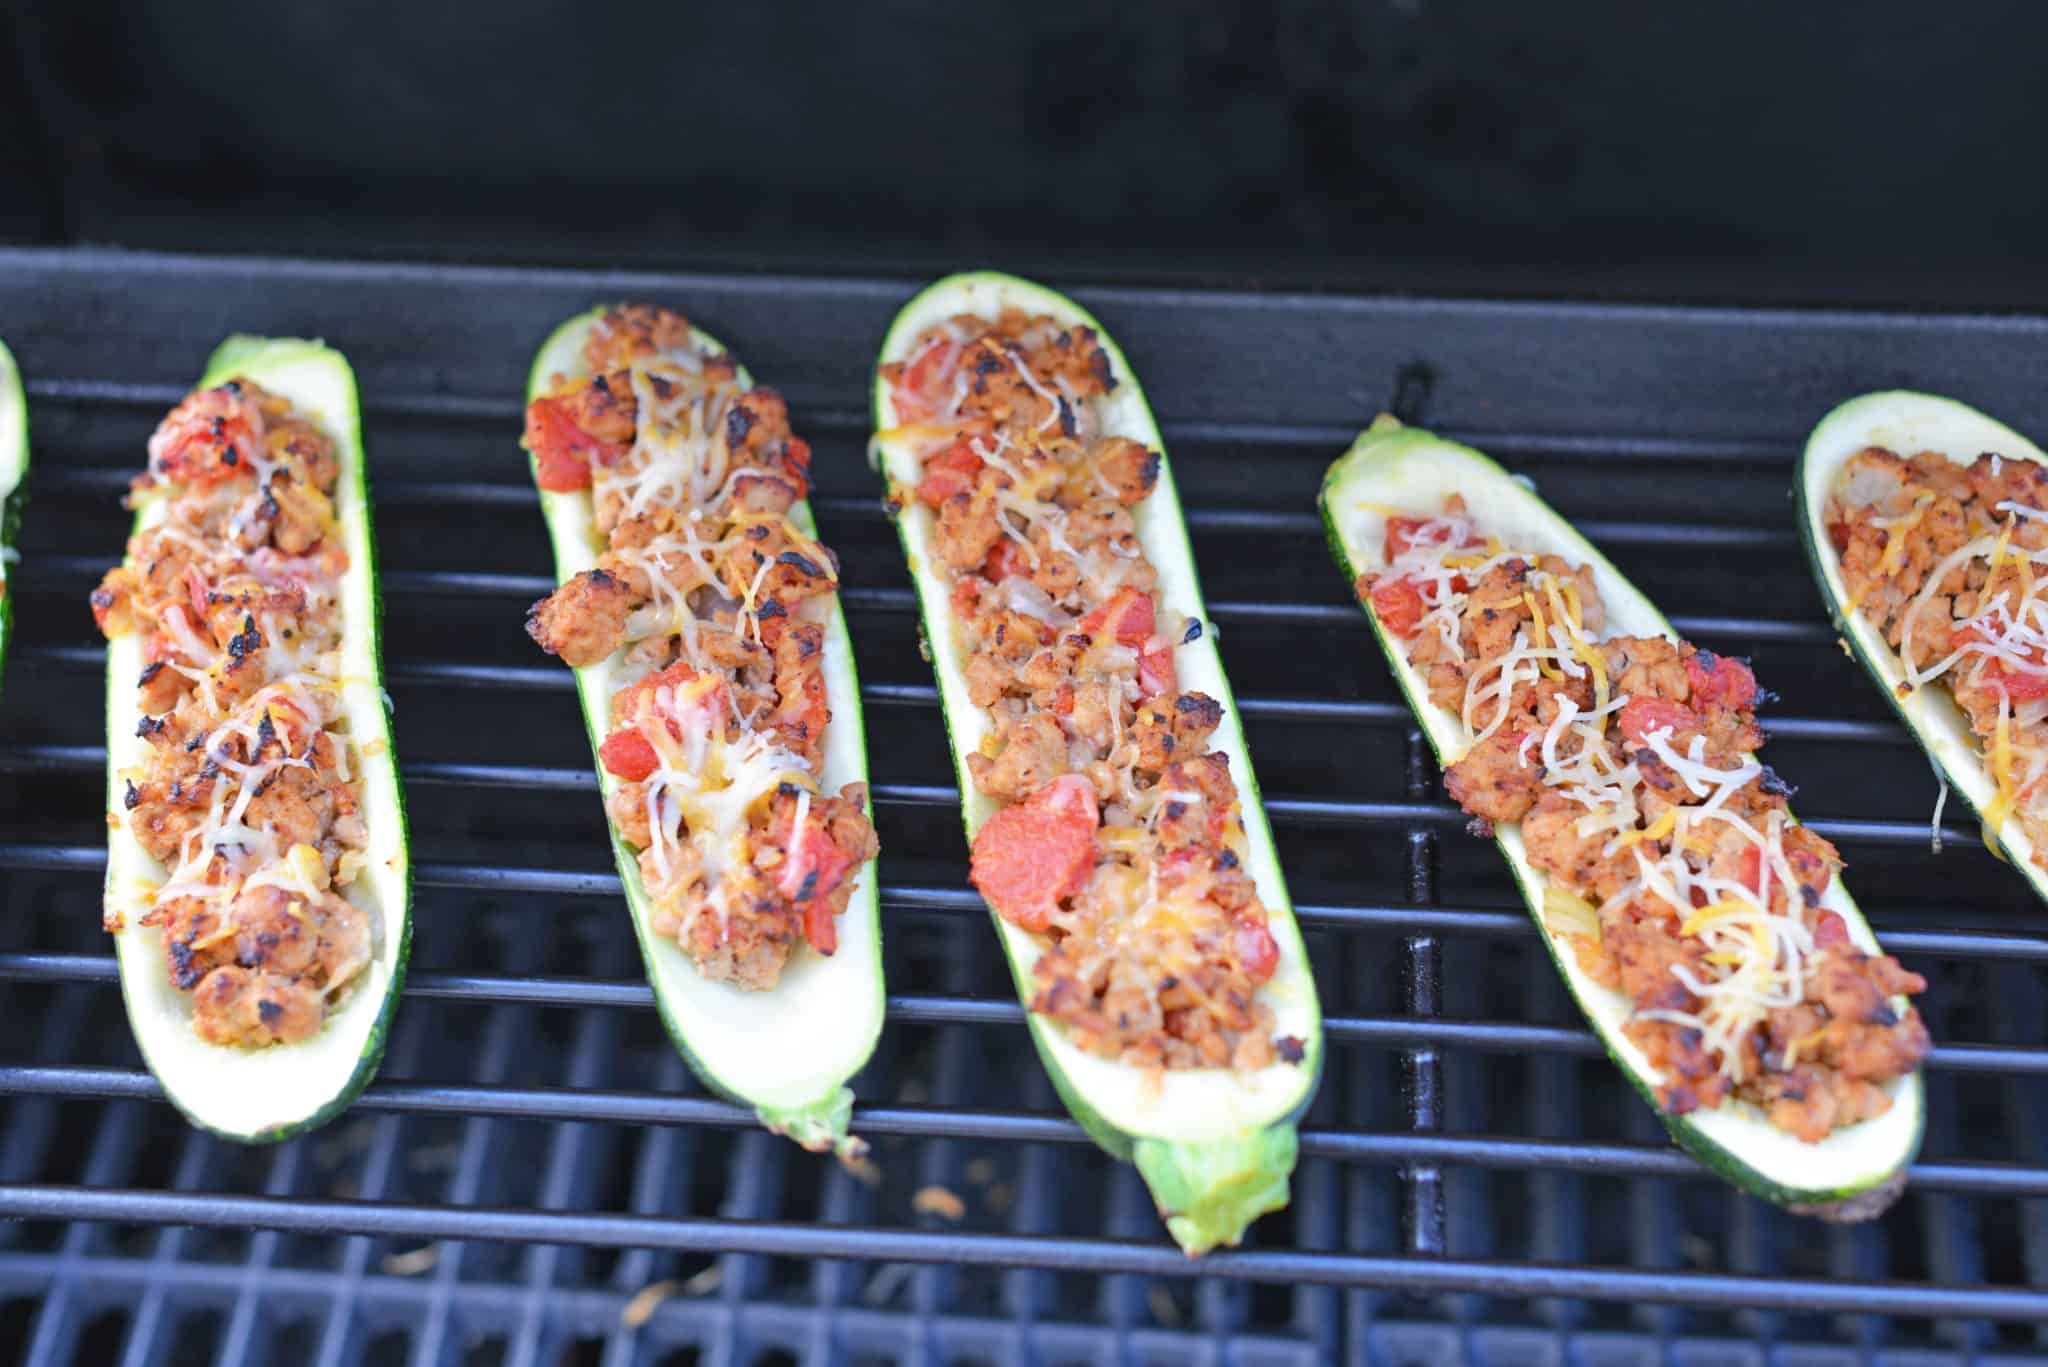 Grilled Turkey Zucchini Boats Recipe - Looking for grilling recipes? Turkey stuffed zucchini makes the perfect healthy dinner! One of the best zucchini recipes I've ever made. www.savoryexperiments.com